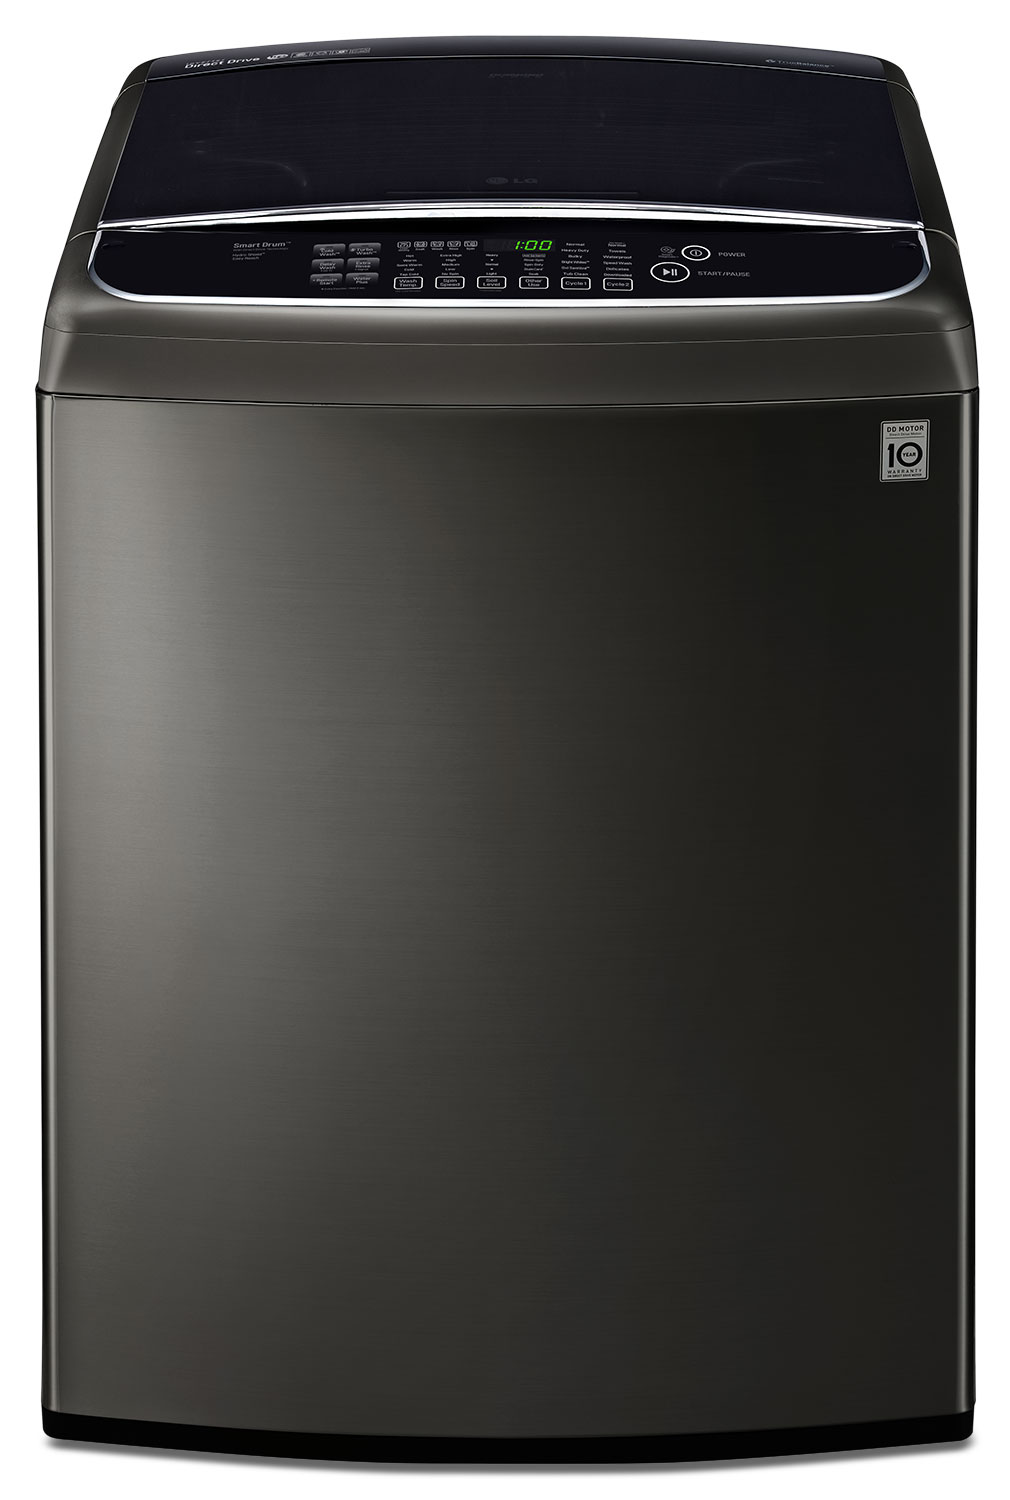 LG Appliances Black Stainless Steel Top-Load Washer (5.8 Cu. Ft. IEC) - WT1901CK